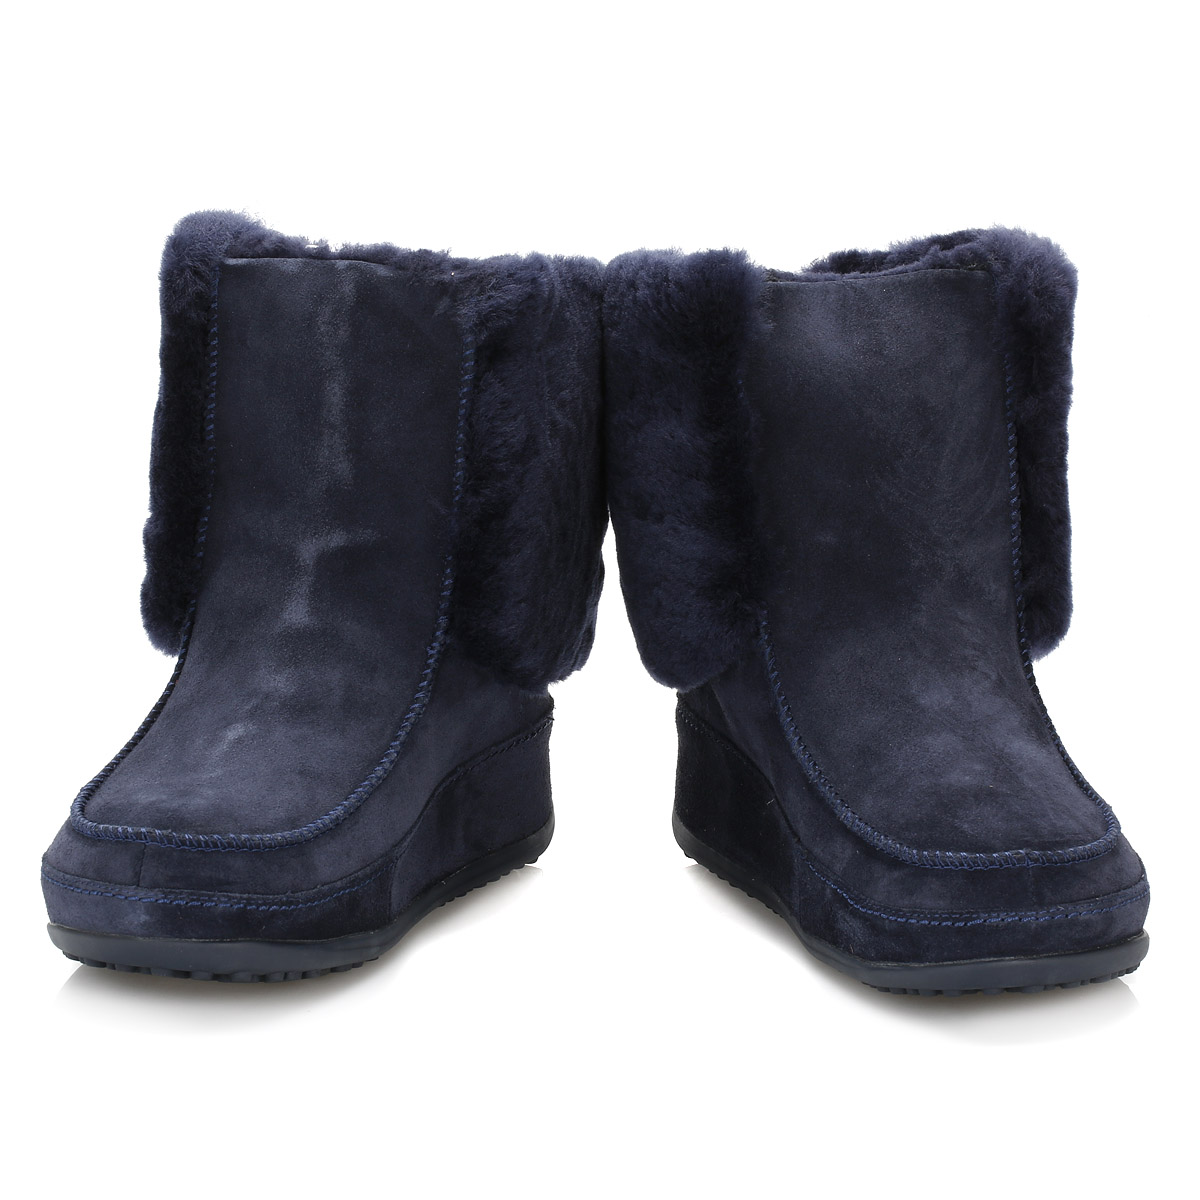 fitflop navy blue suede boots supercuff mukluk